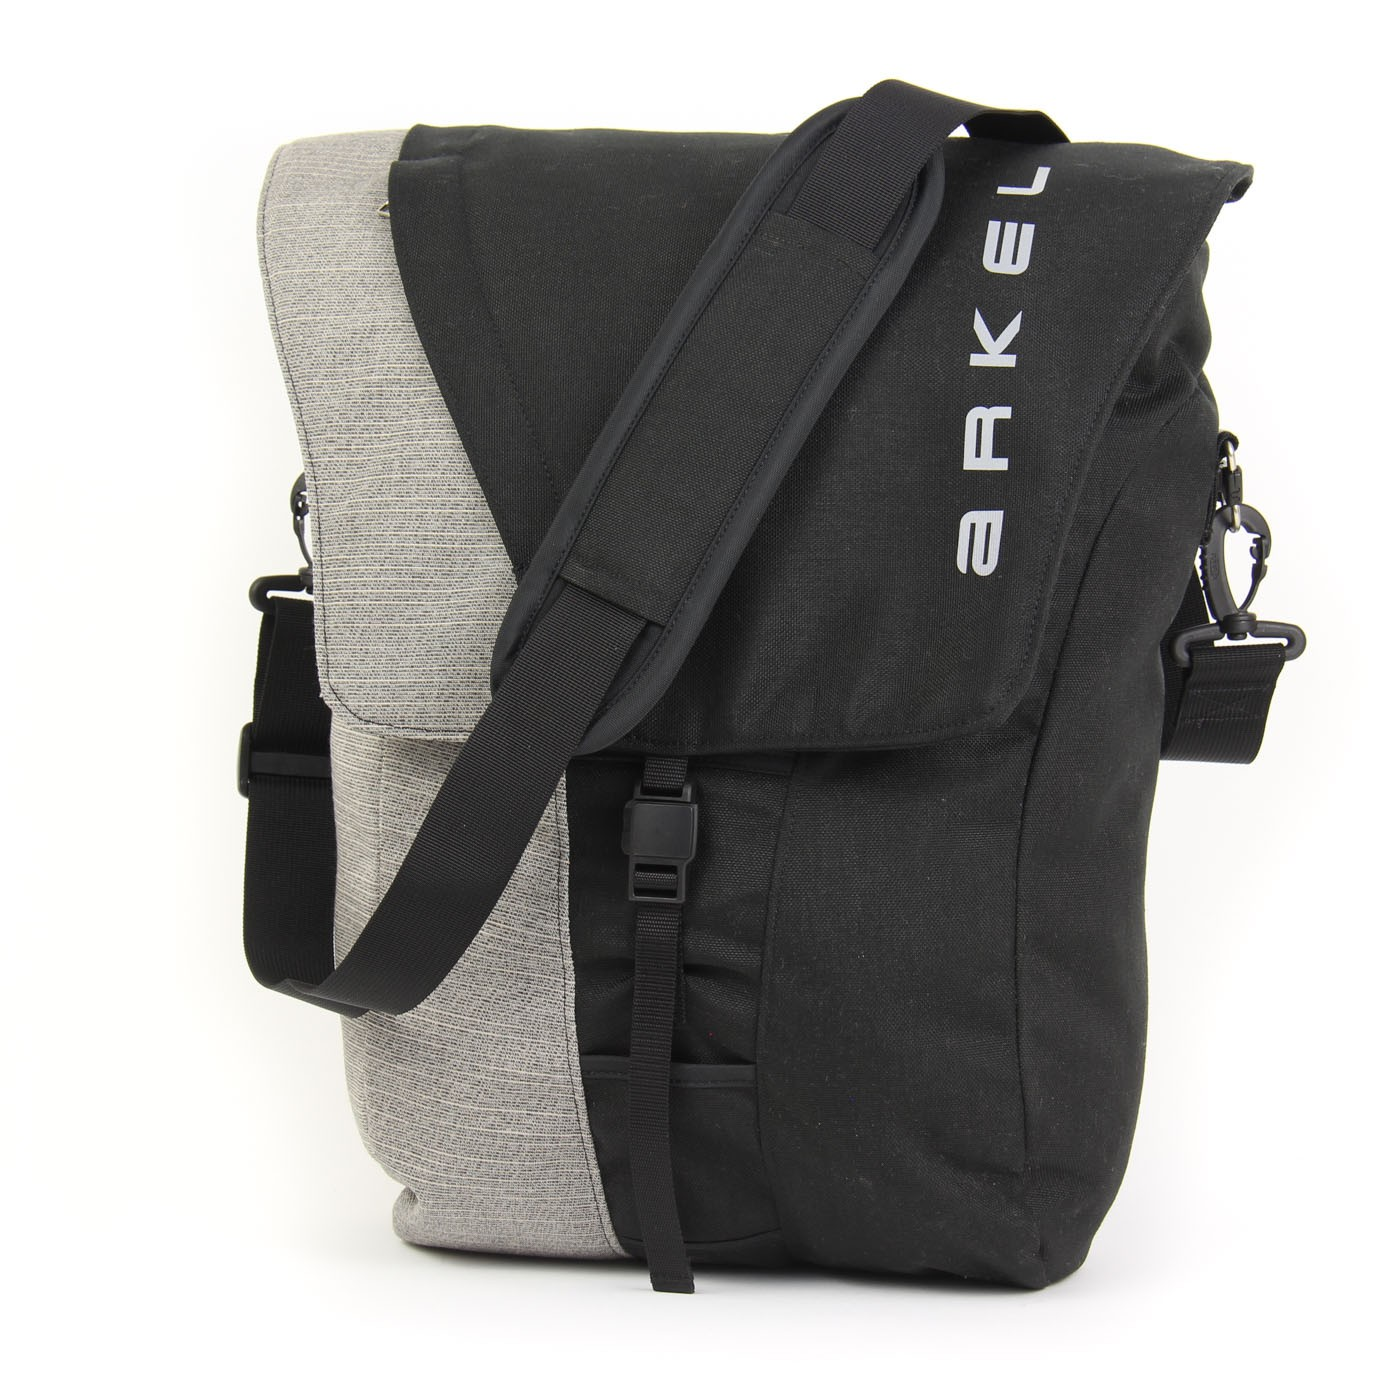 Commuting Bike Pannier For Laptops From Arkel